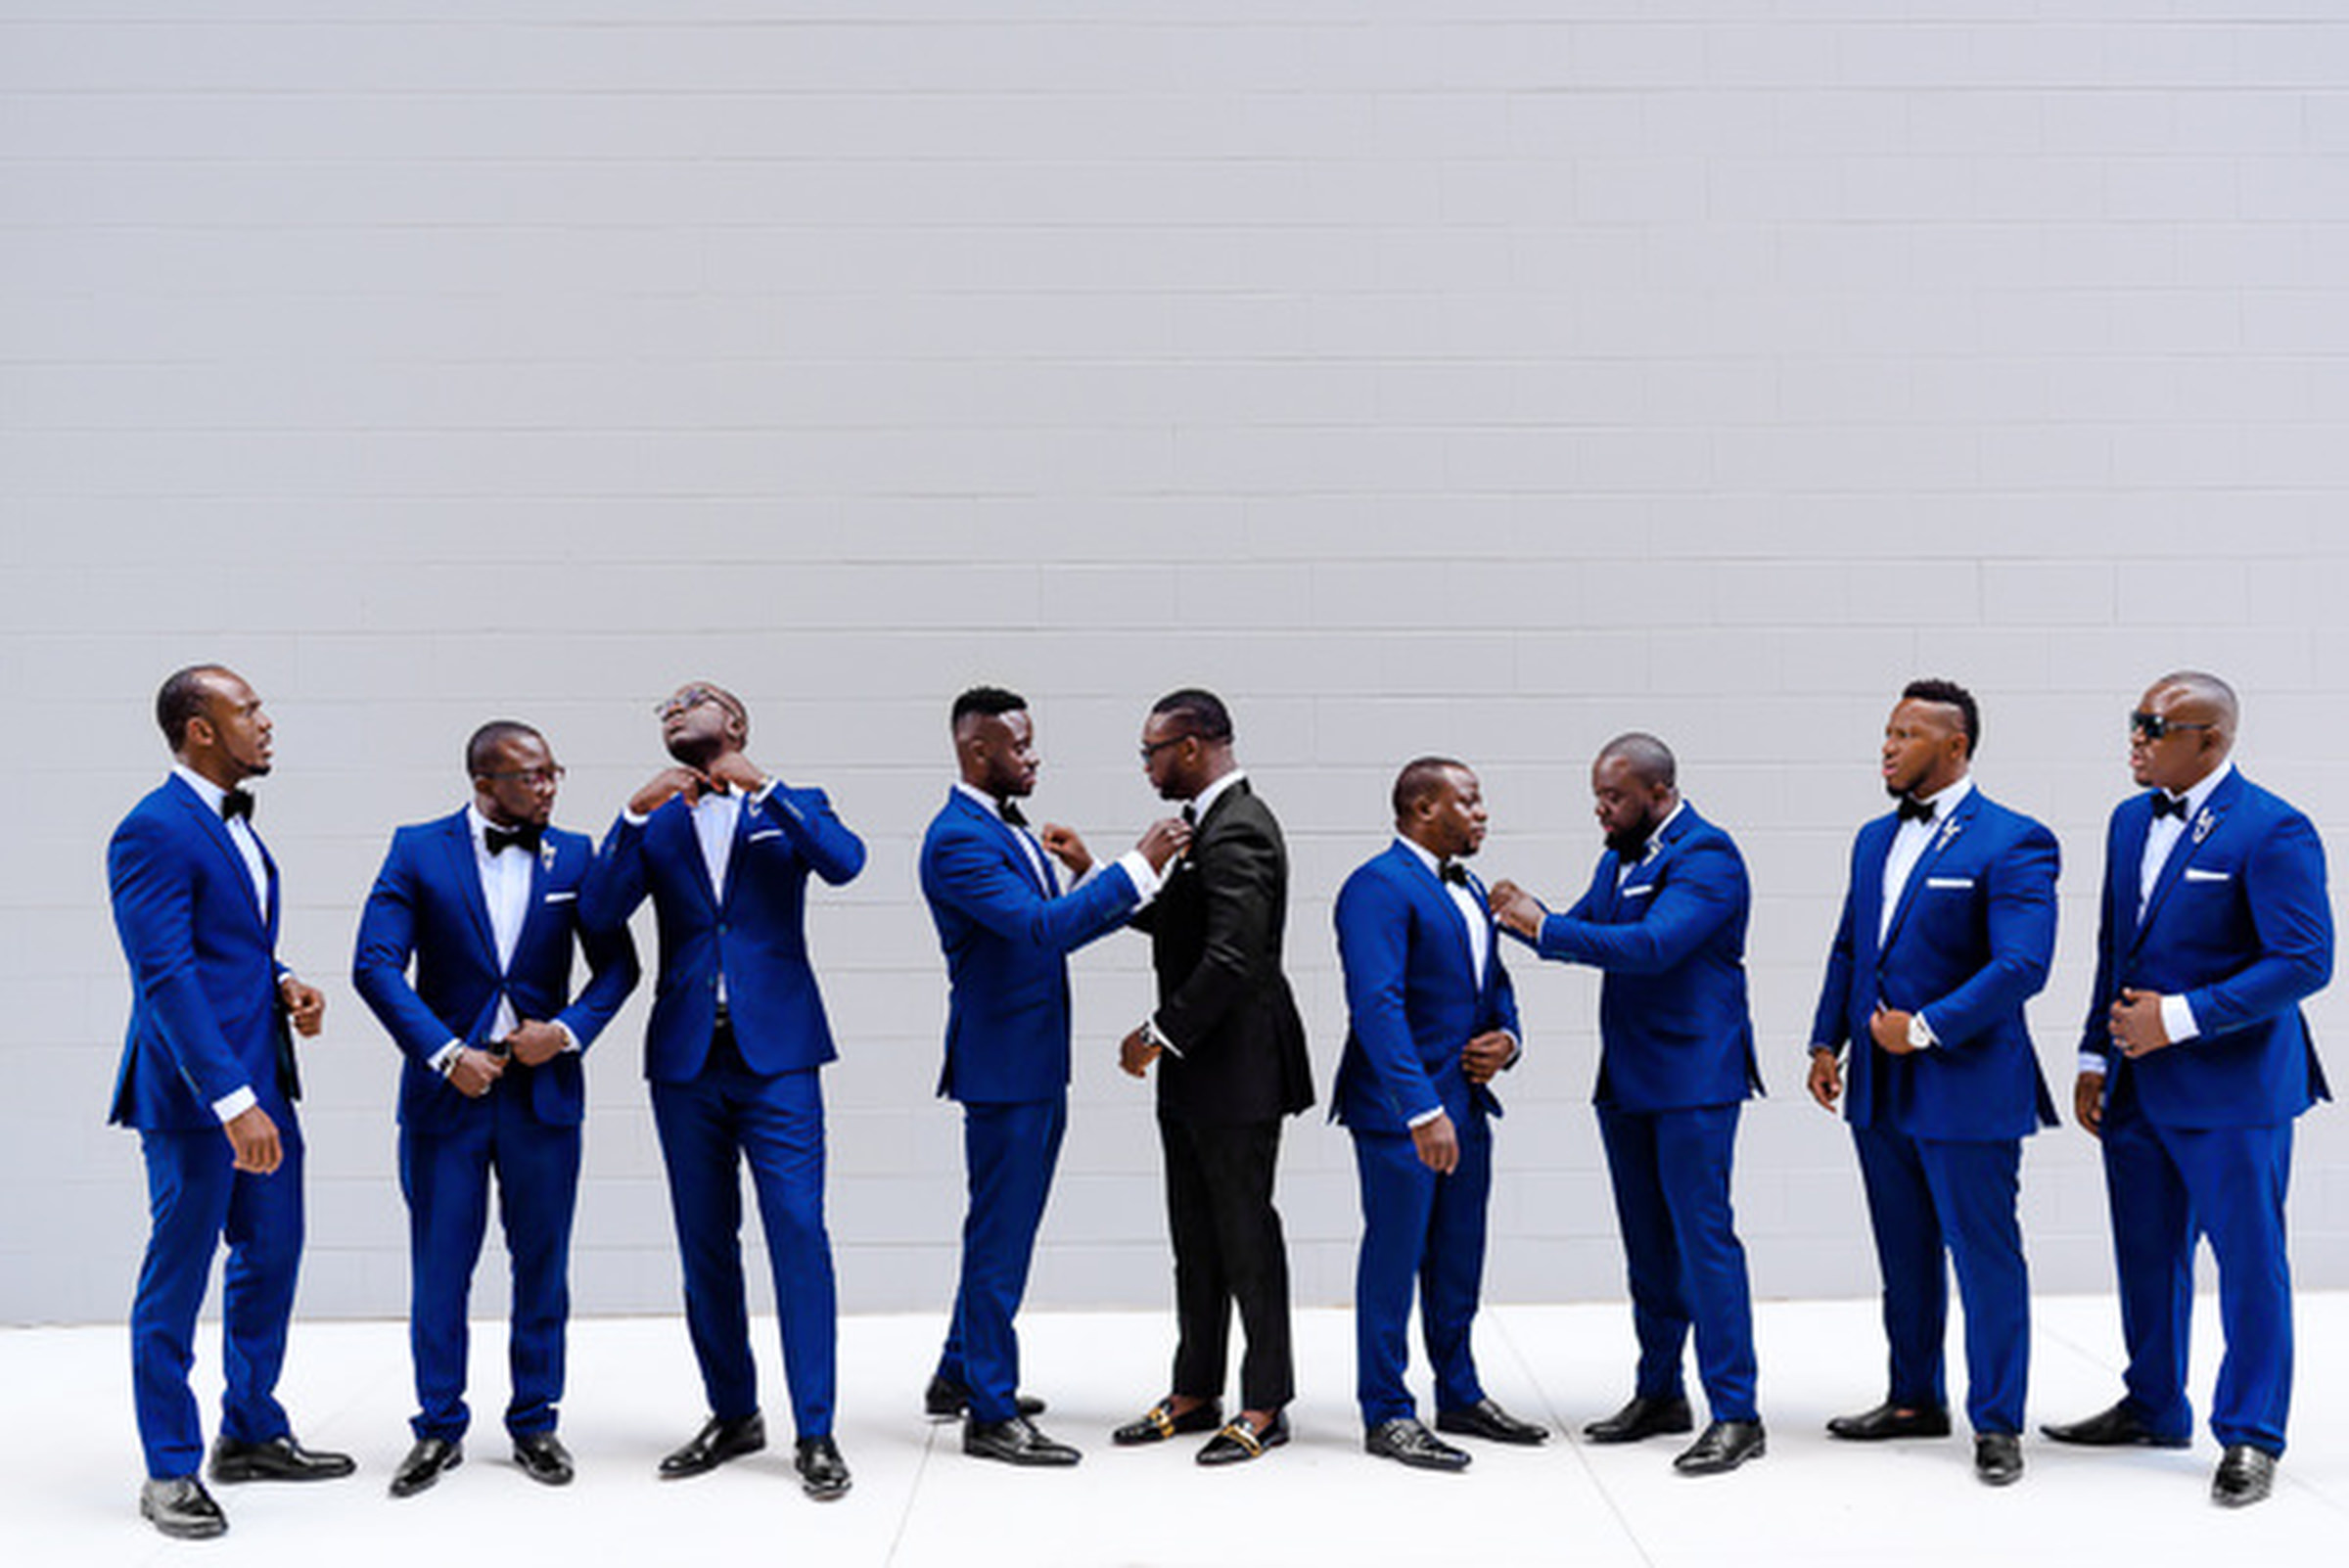 Groom and groomsmen primping - photo by Kirth Bobb Photography